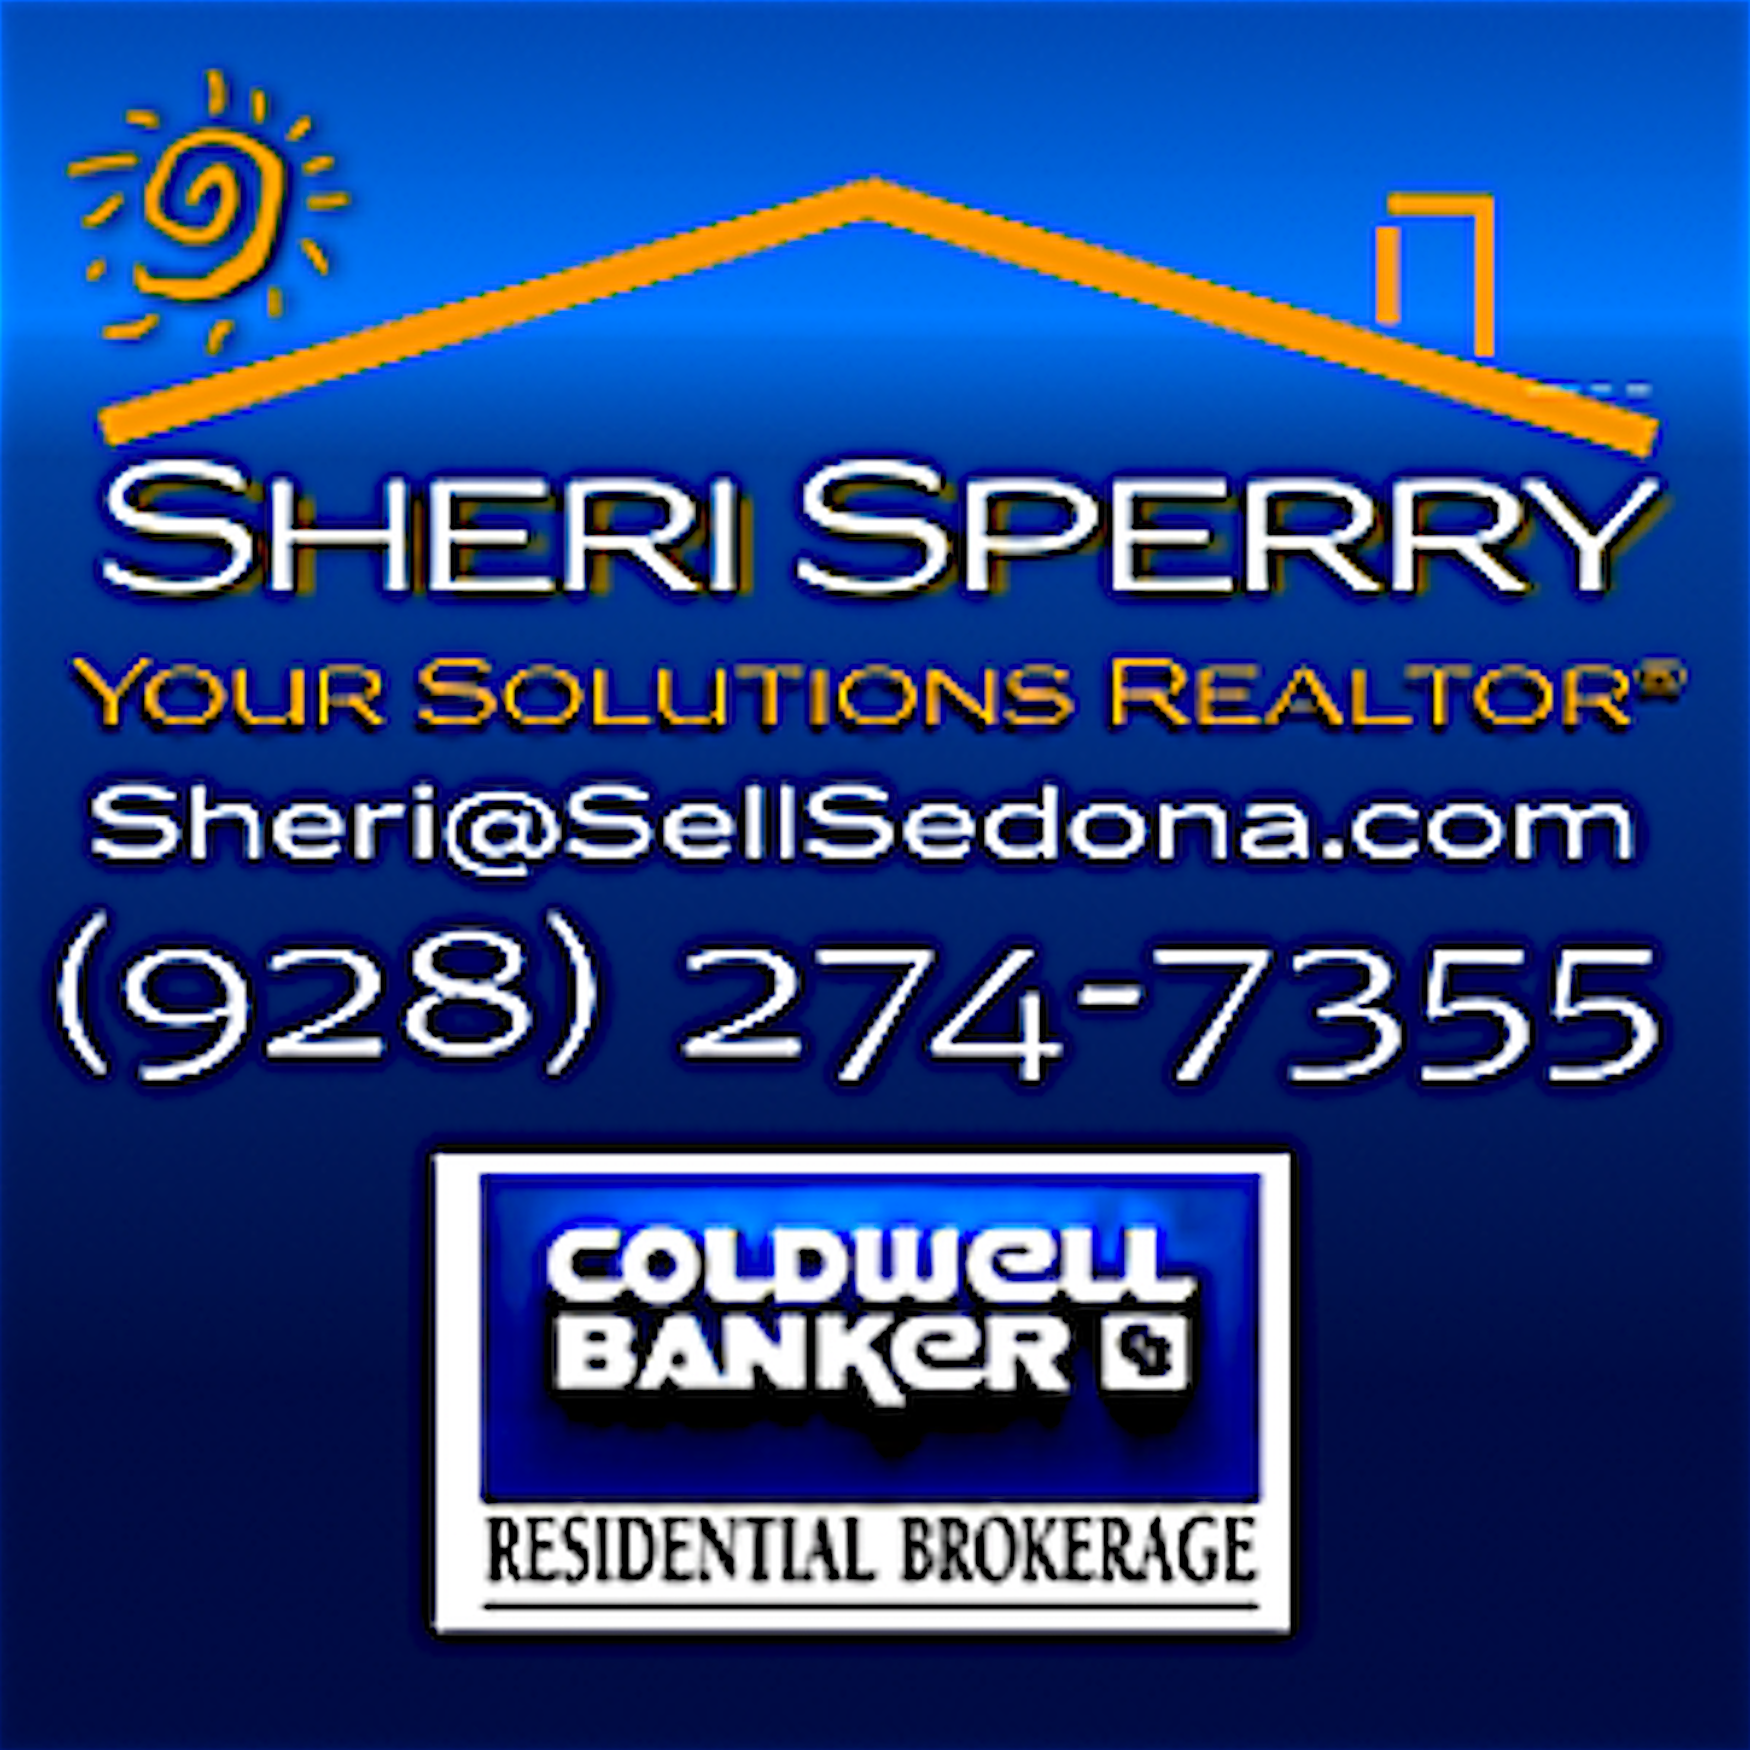 Sheri Sperry Coldwell Banker Residential Brokerage